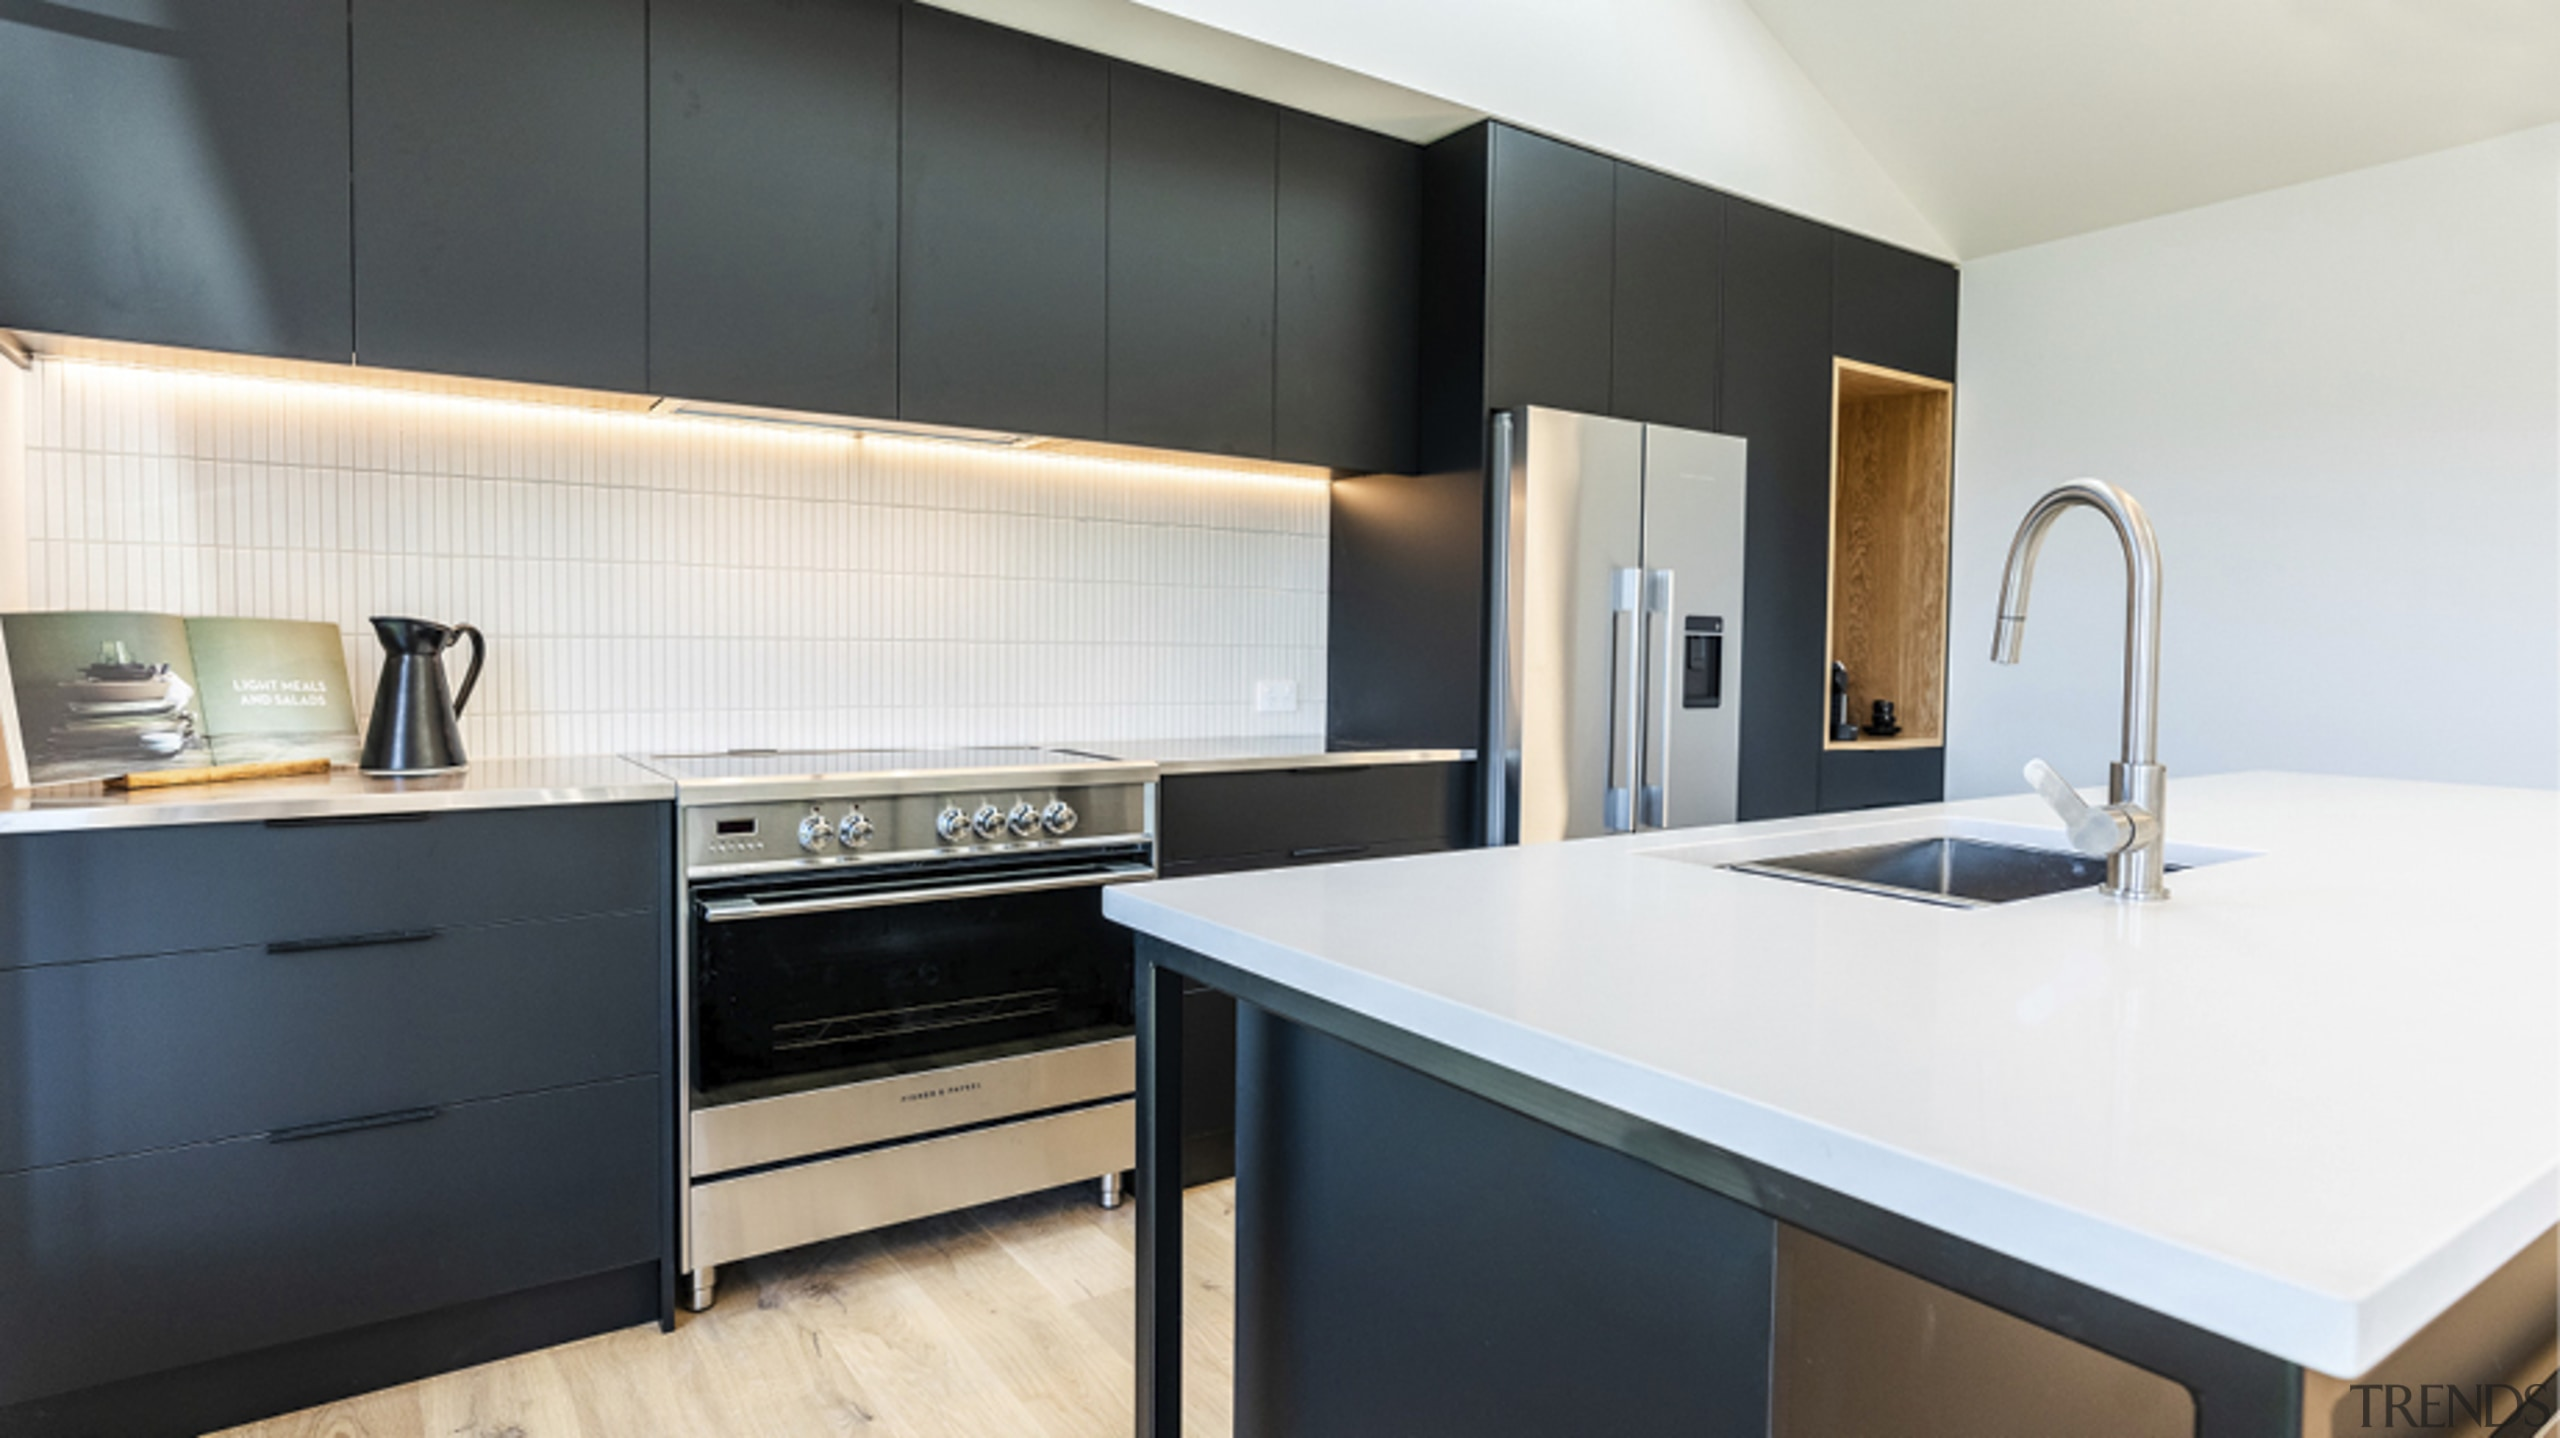 Vertical subway tiles provide a classic splashback with